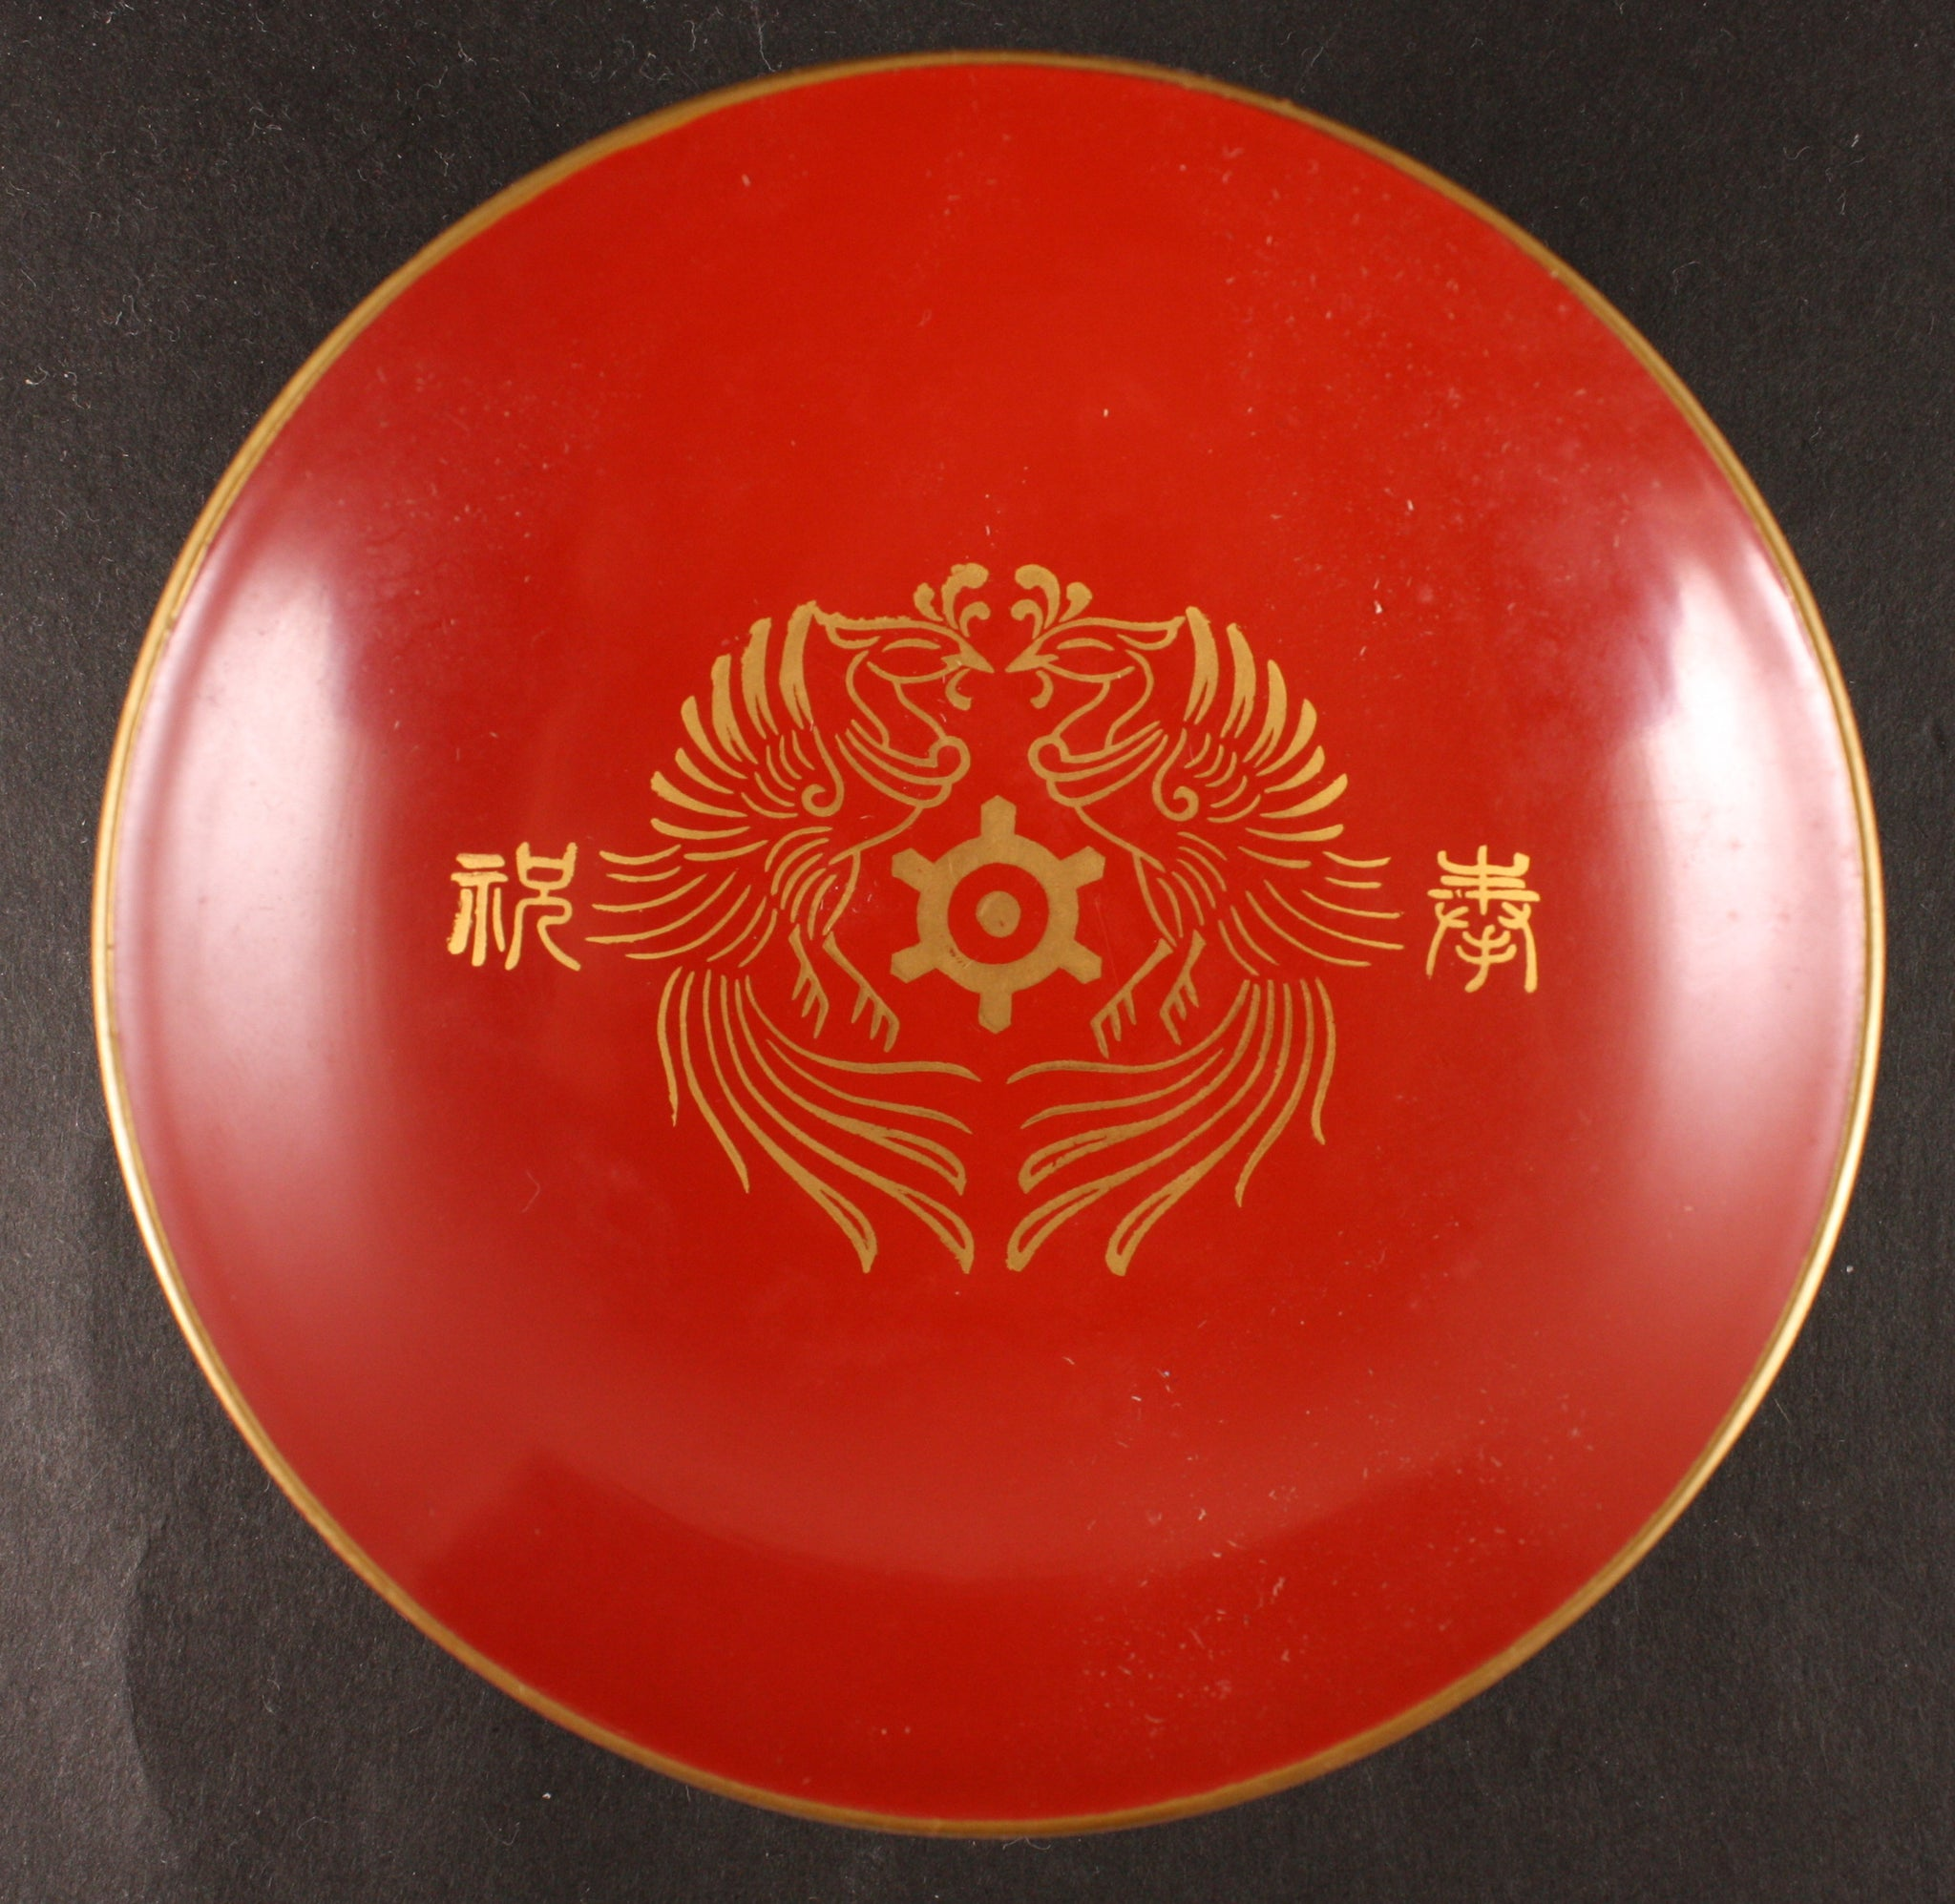 Antique Japanese Military Emperor Enthronement Tokyo City Celebration Lacquer Sake Cup